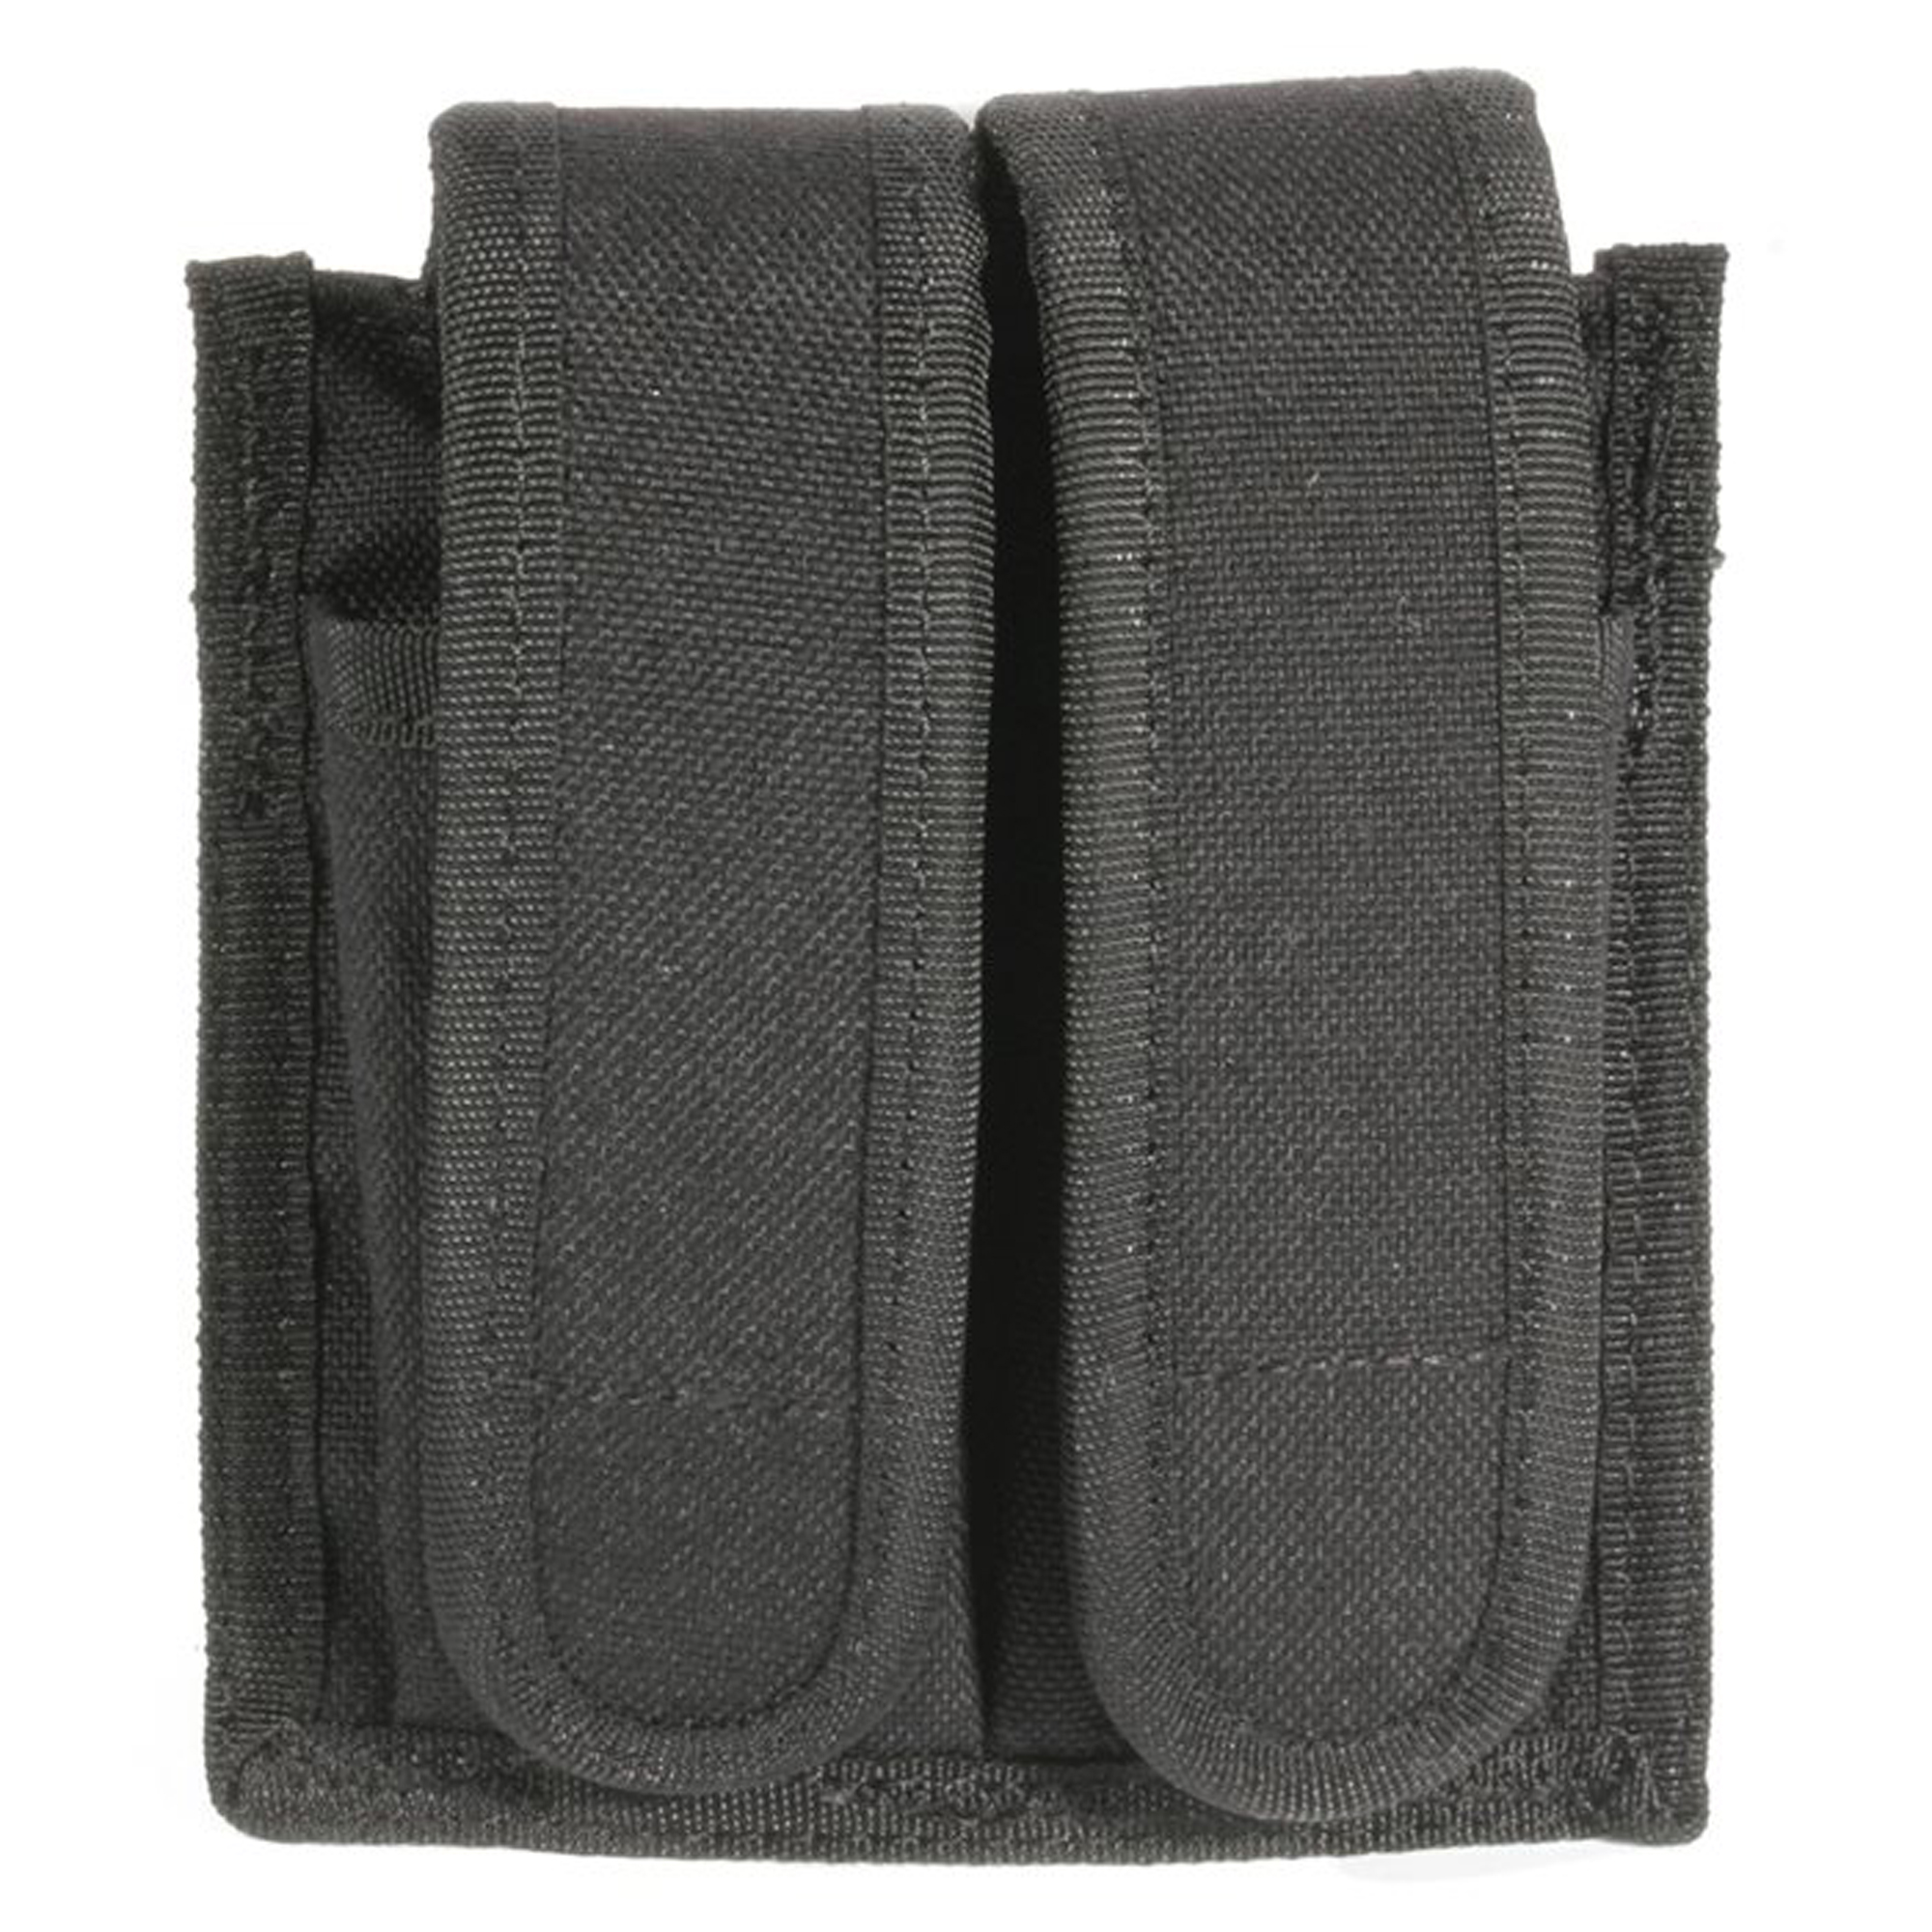 "The Sportster Universal Double Magazine case accommodates most pistol magazines and folding knives. It is constructed of durable 600 denier polyester and fits belts up to 2.25"" wide."